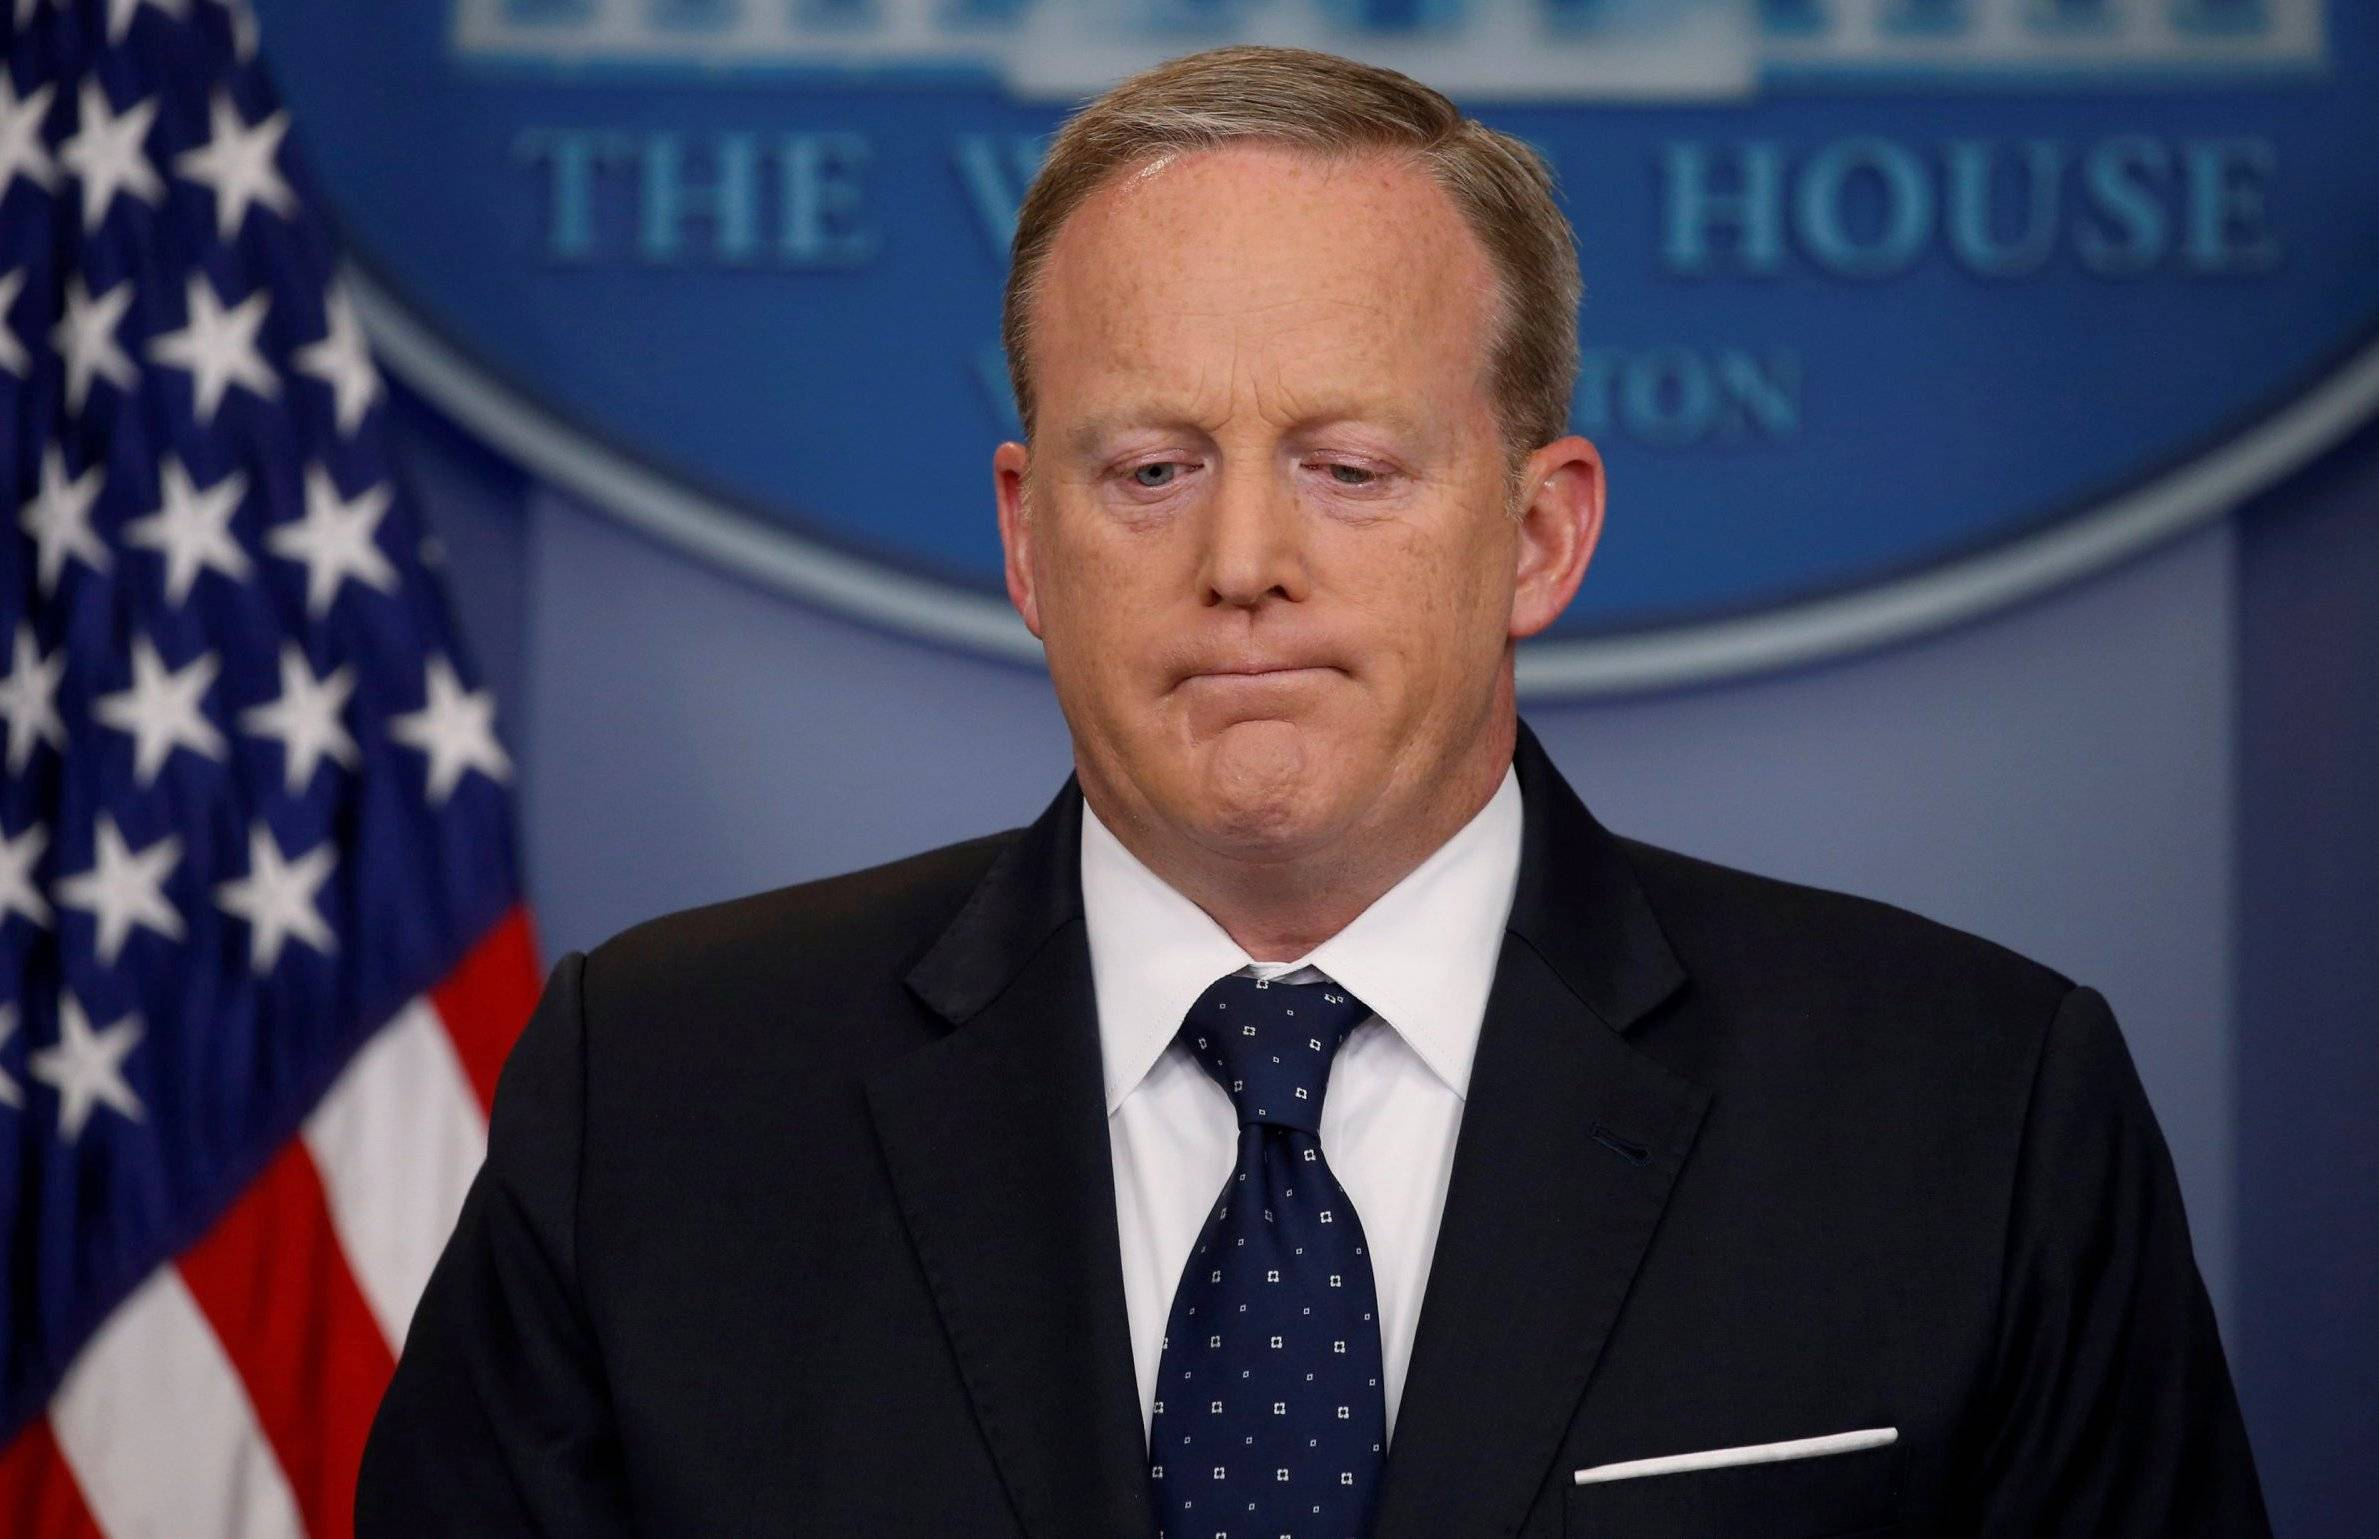 Sean Spicer, famous for